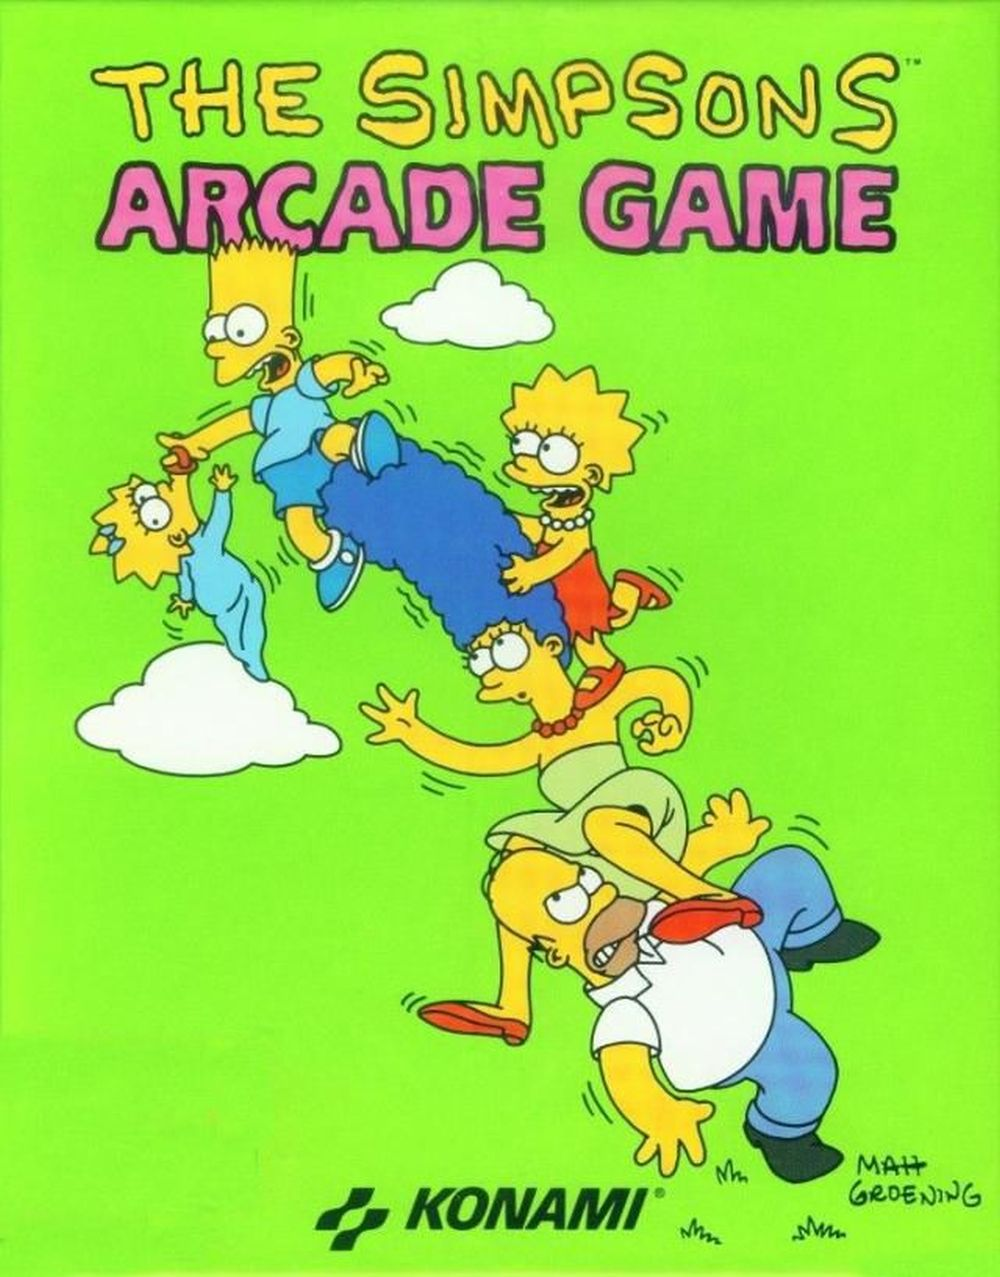 One of the best arcade games of the '90s.